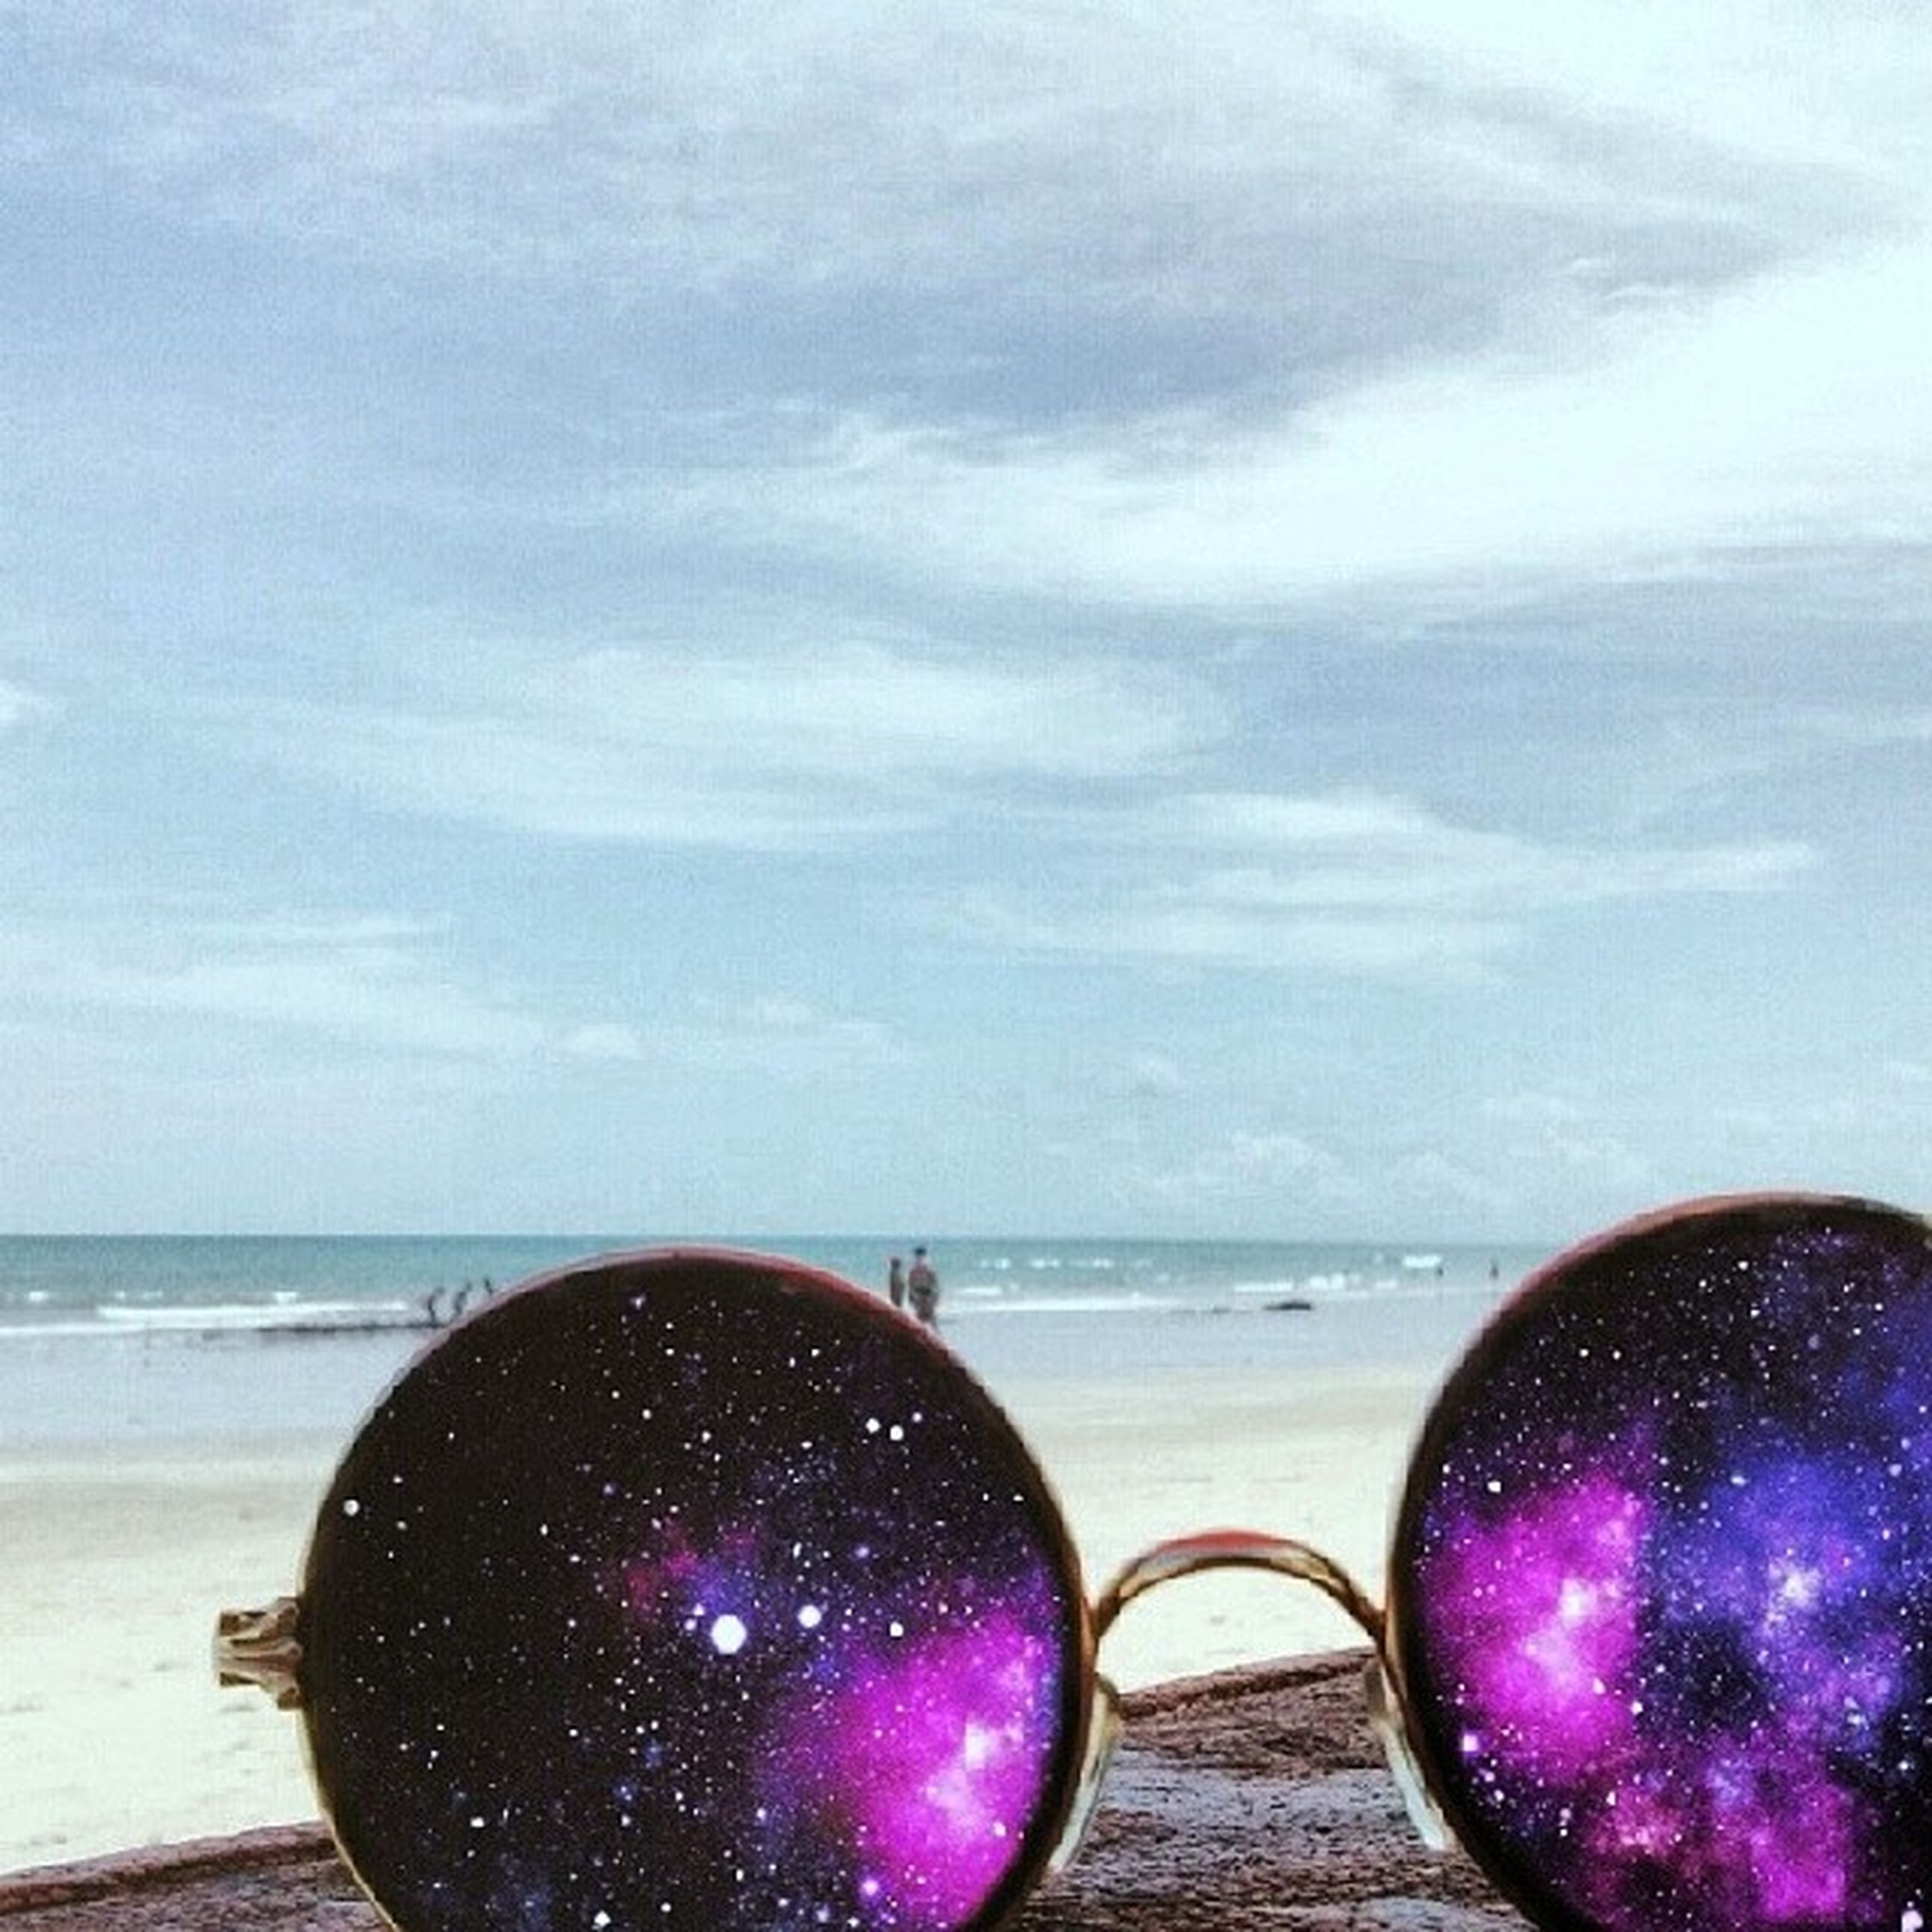 sea, sky, water, horizon over water, food and drink, cloud - sky, red, close-up, beauty in nature, no people, scenics, nature, beach, freshness, ball, circle, tranquil scene, outdoors, fruit, tranquility